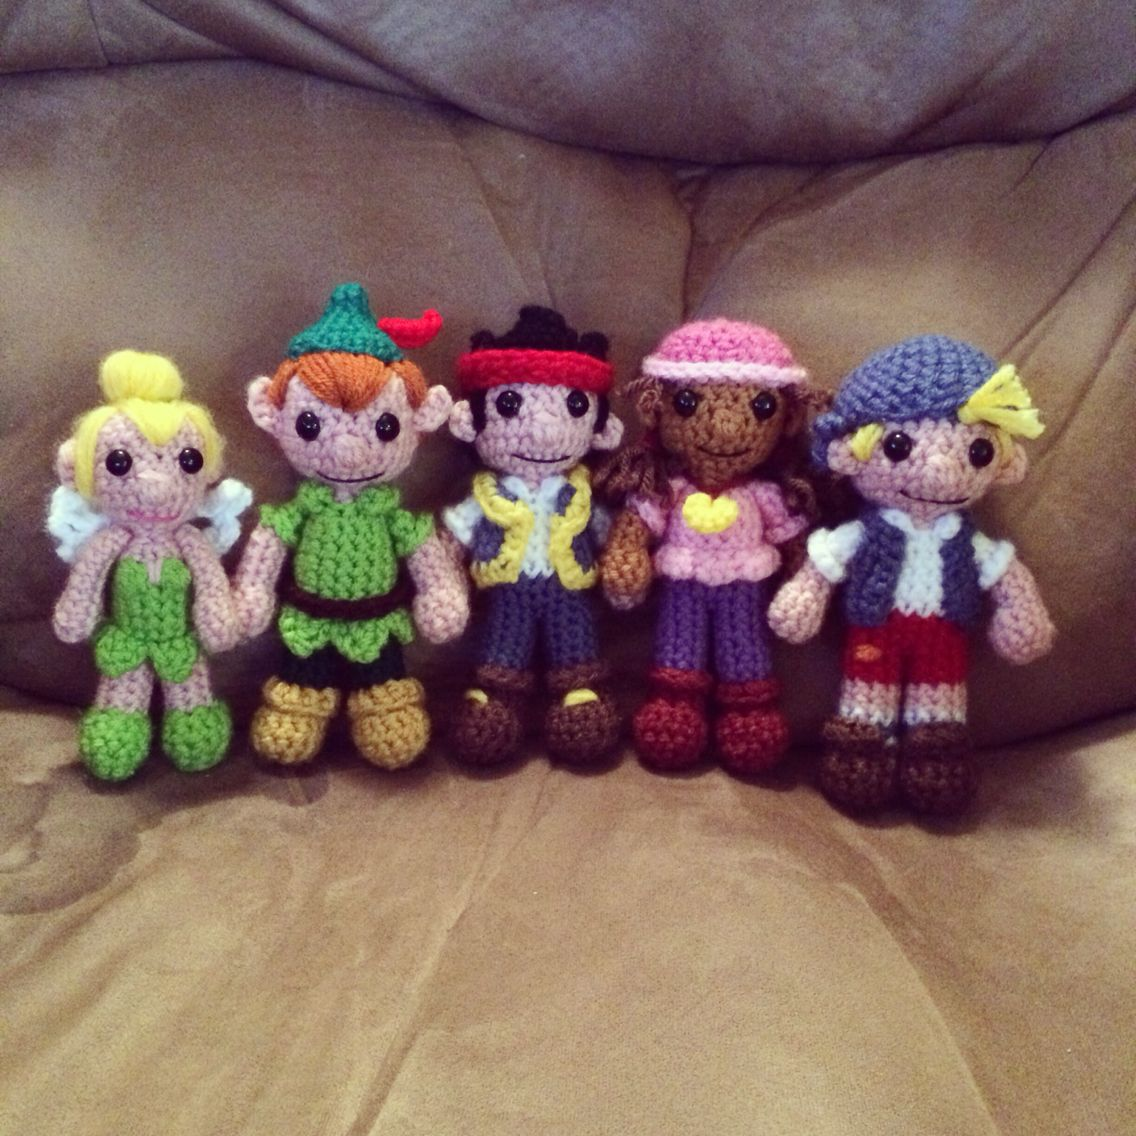 Crochet jake and the neverland pirates amigurumi set i made for my crochet jake and the neverland pirates amigurumi set i made for my 2 year old with dt1010fo